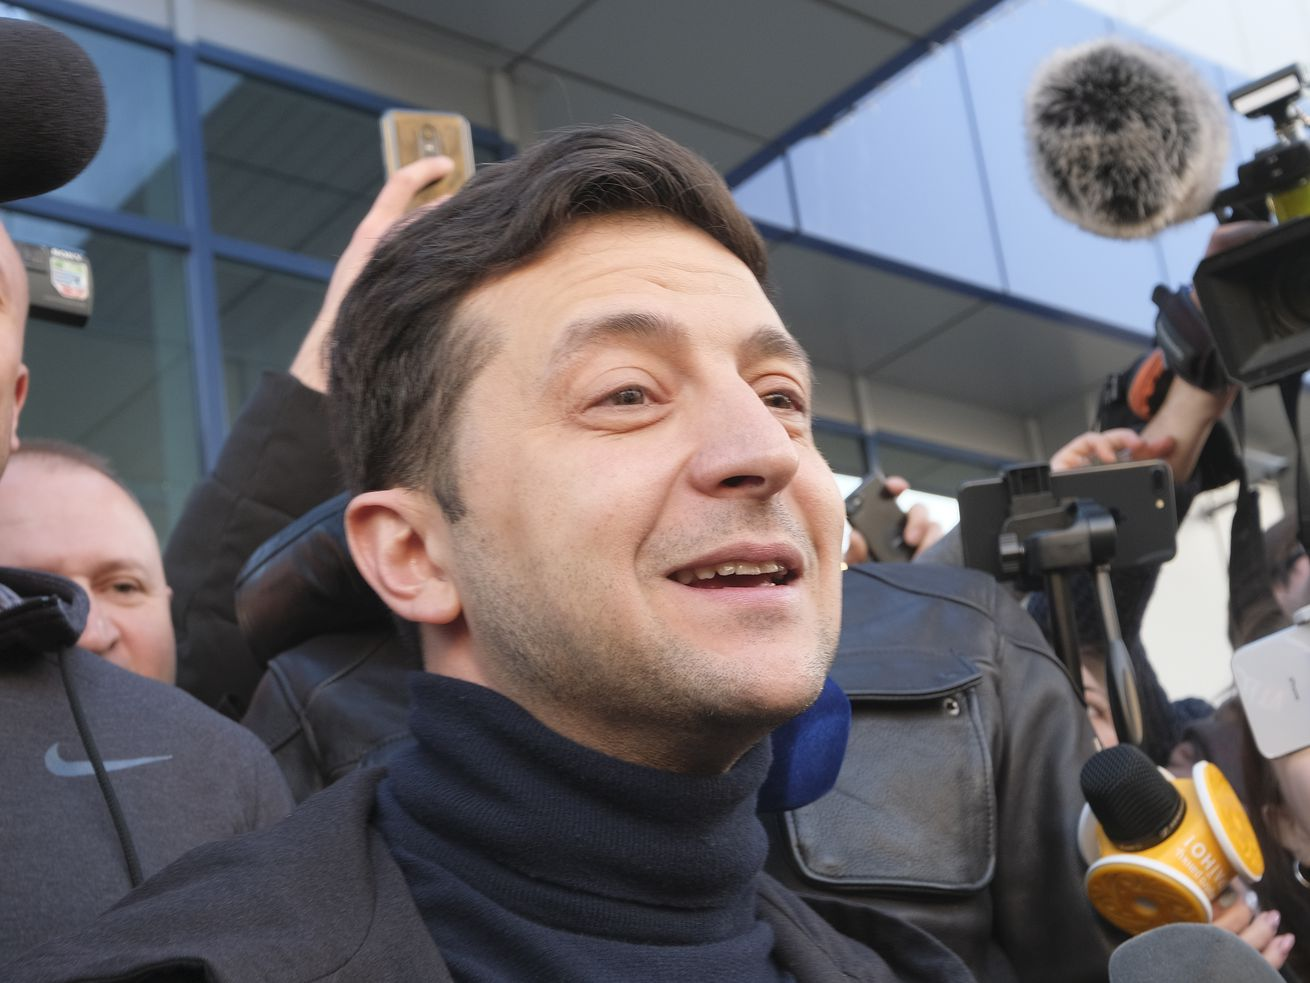 Volodymyr Zelensky was just voted in as Ukraine's next president. Here he talks to journalists after taking a drug and alcohol test at the Eurolab diagnostic center on April 5, 2019.